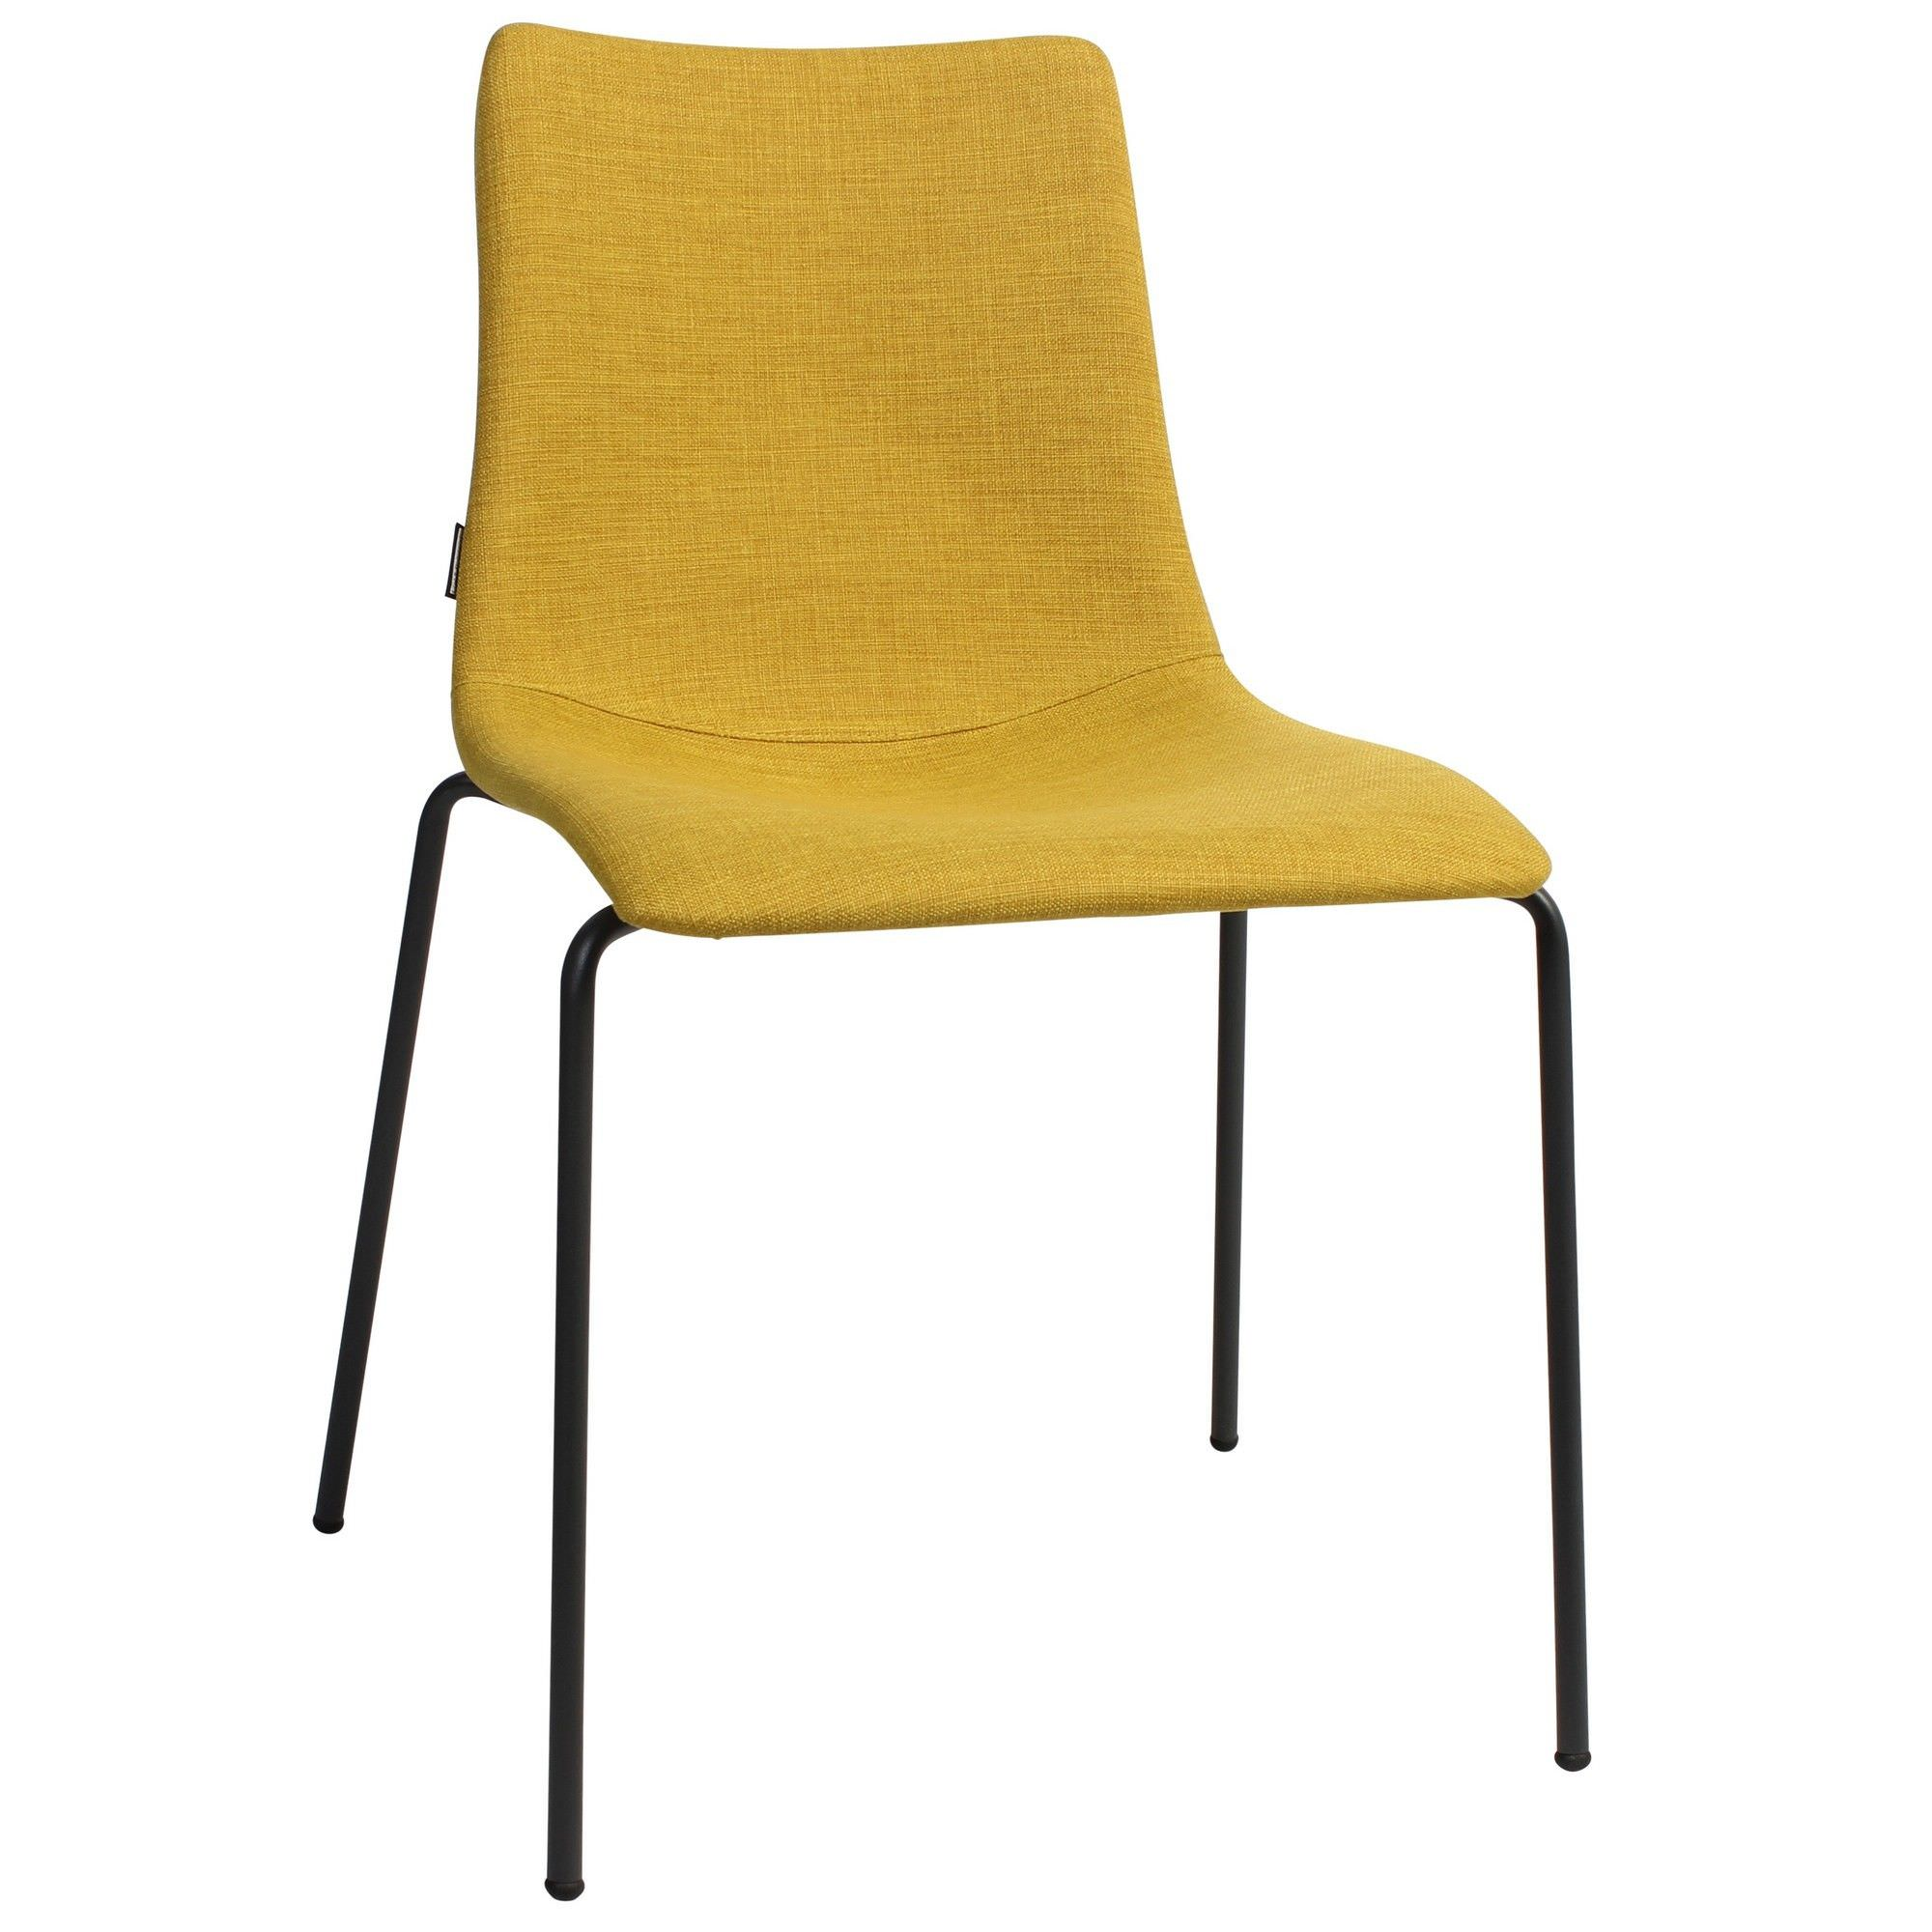 Zebra Pop Italian Made Commercial Grade Fabric Dining Chair, Metal Leg, Saffron / Anthracite